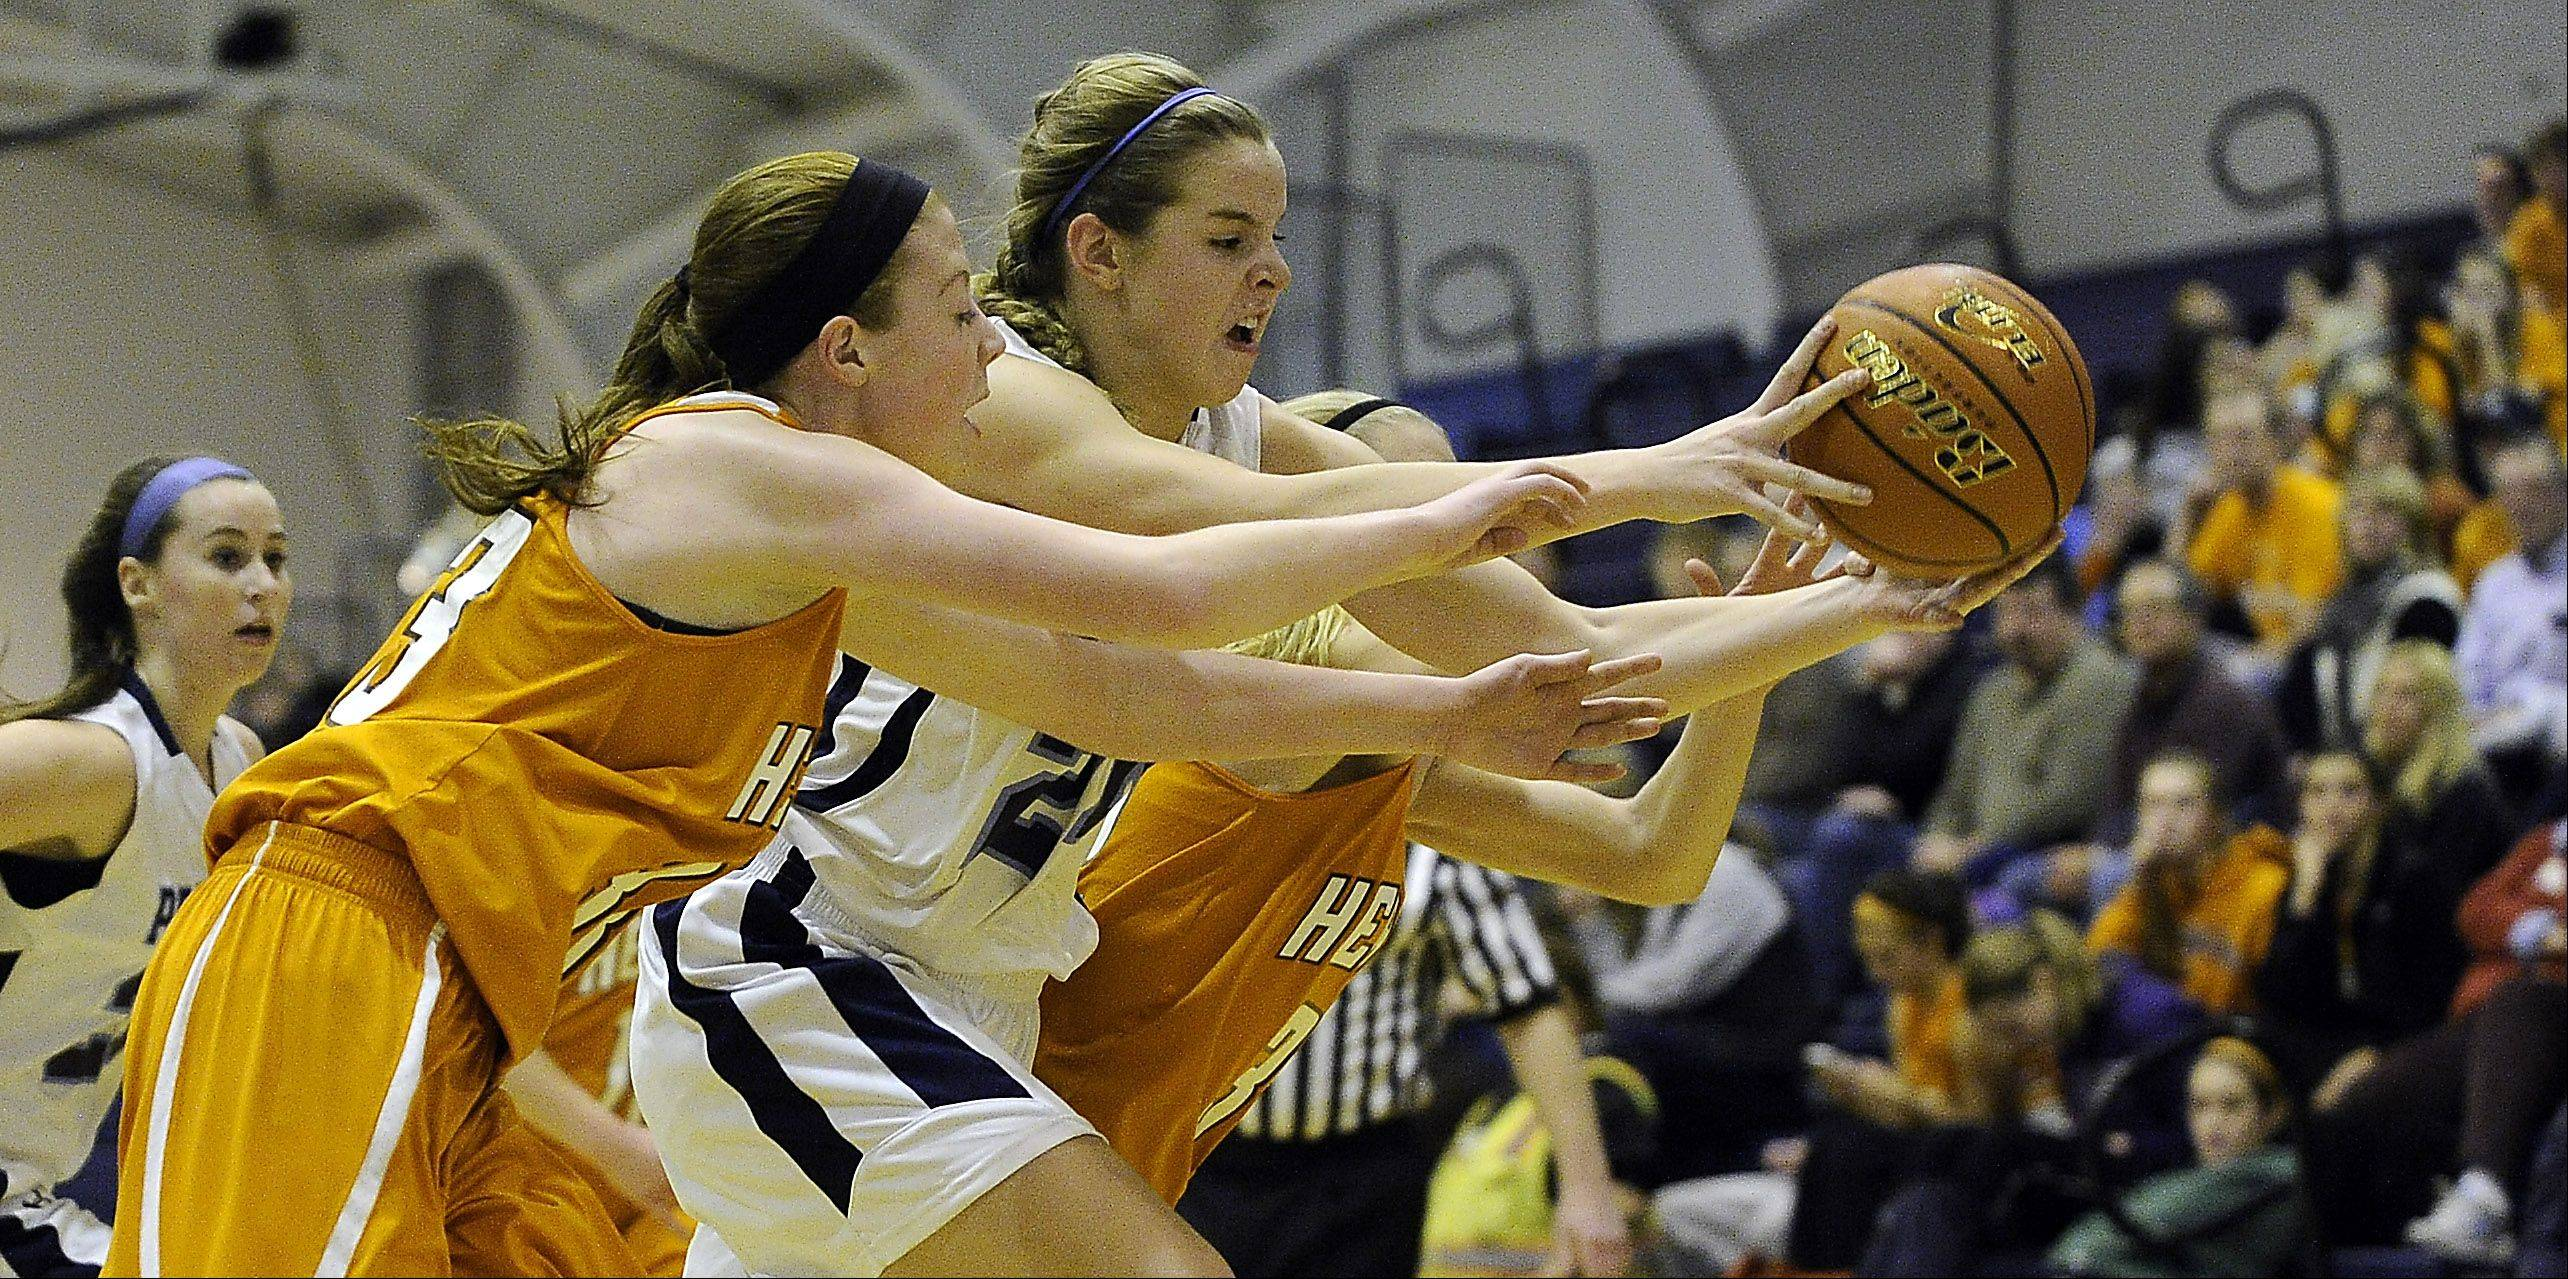 Images: Prospect vs. Hersey, girls basketball